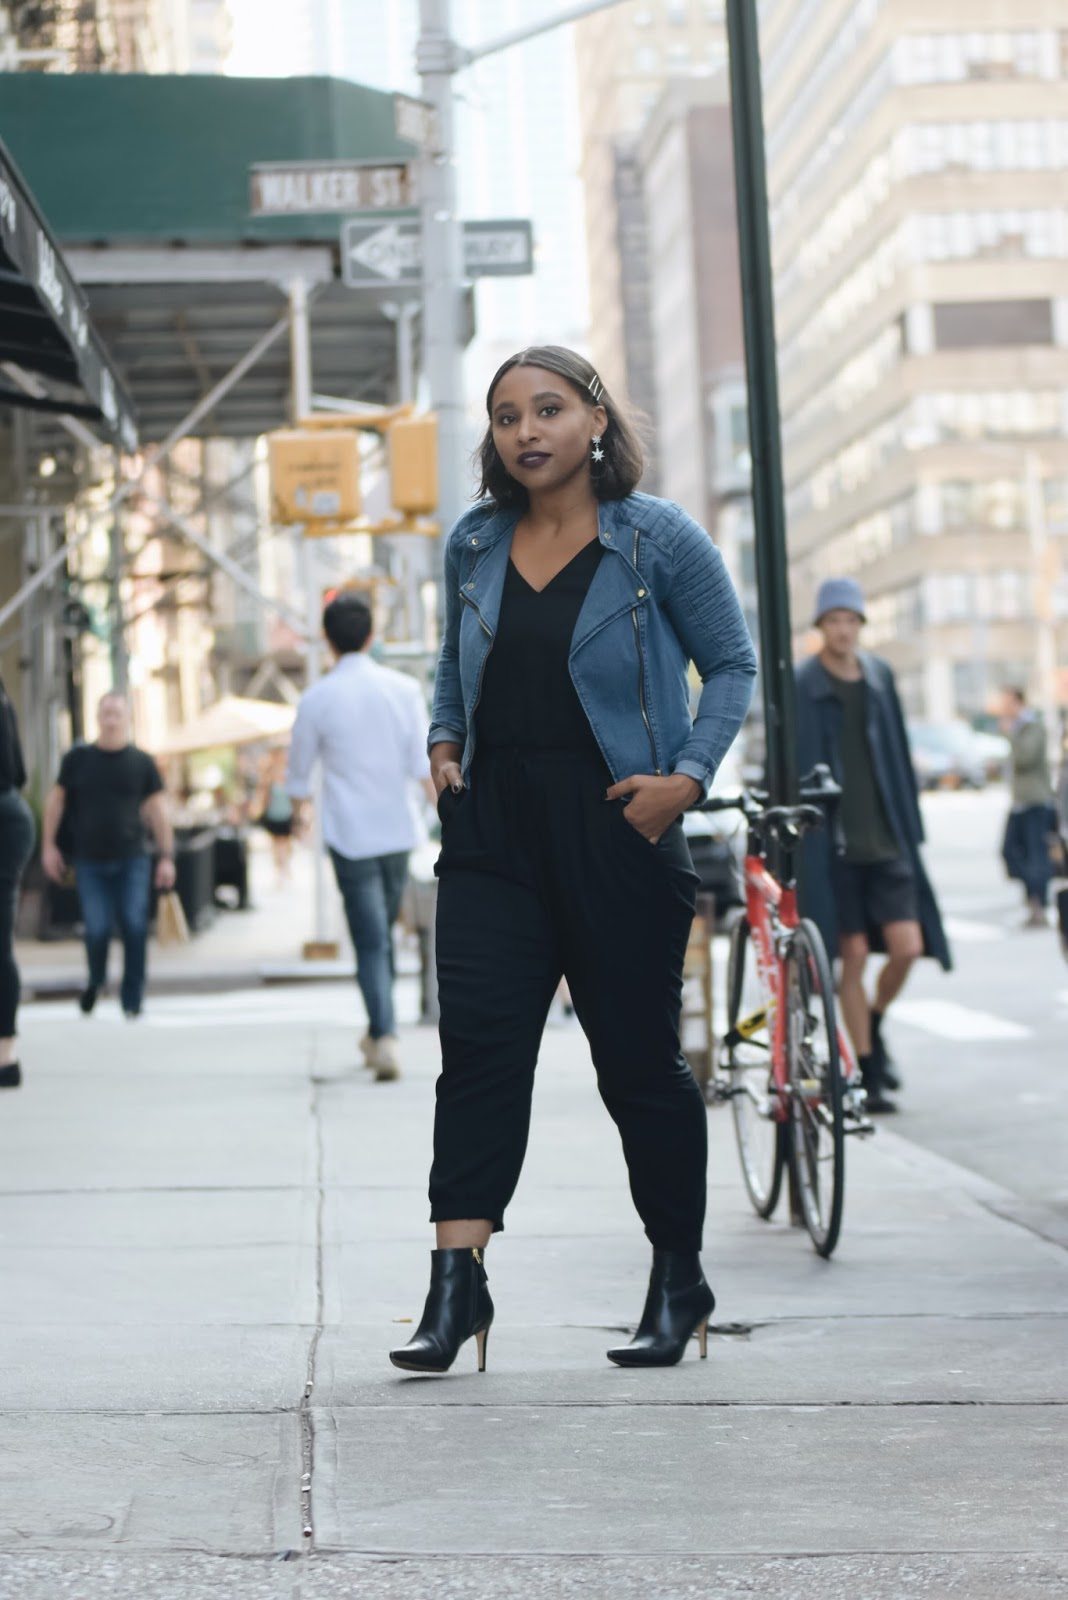 Fall outfit ideas, vampy fall looks, denim jacket, black jumpsuit, darkside